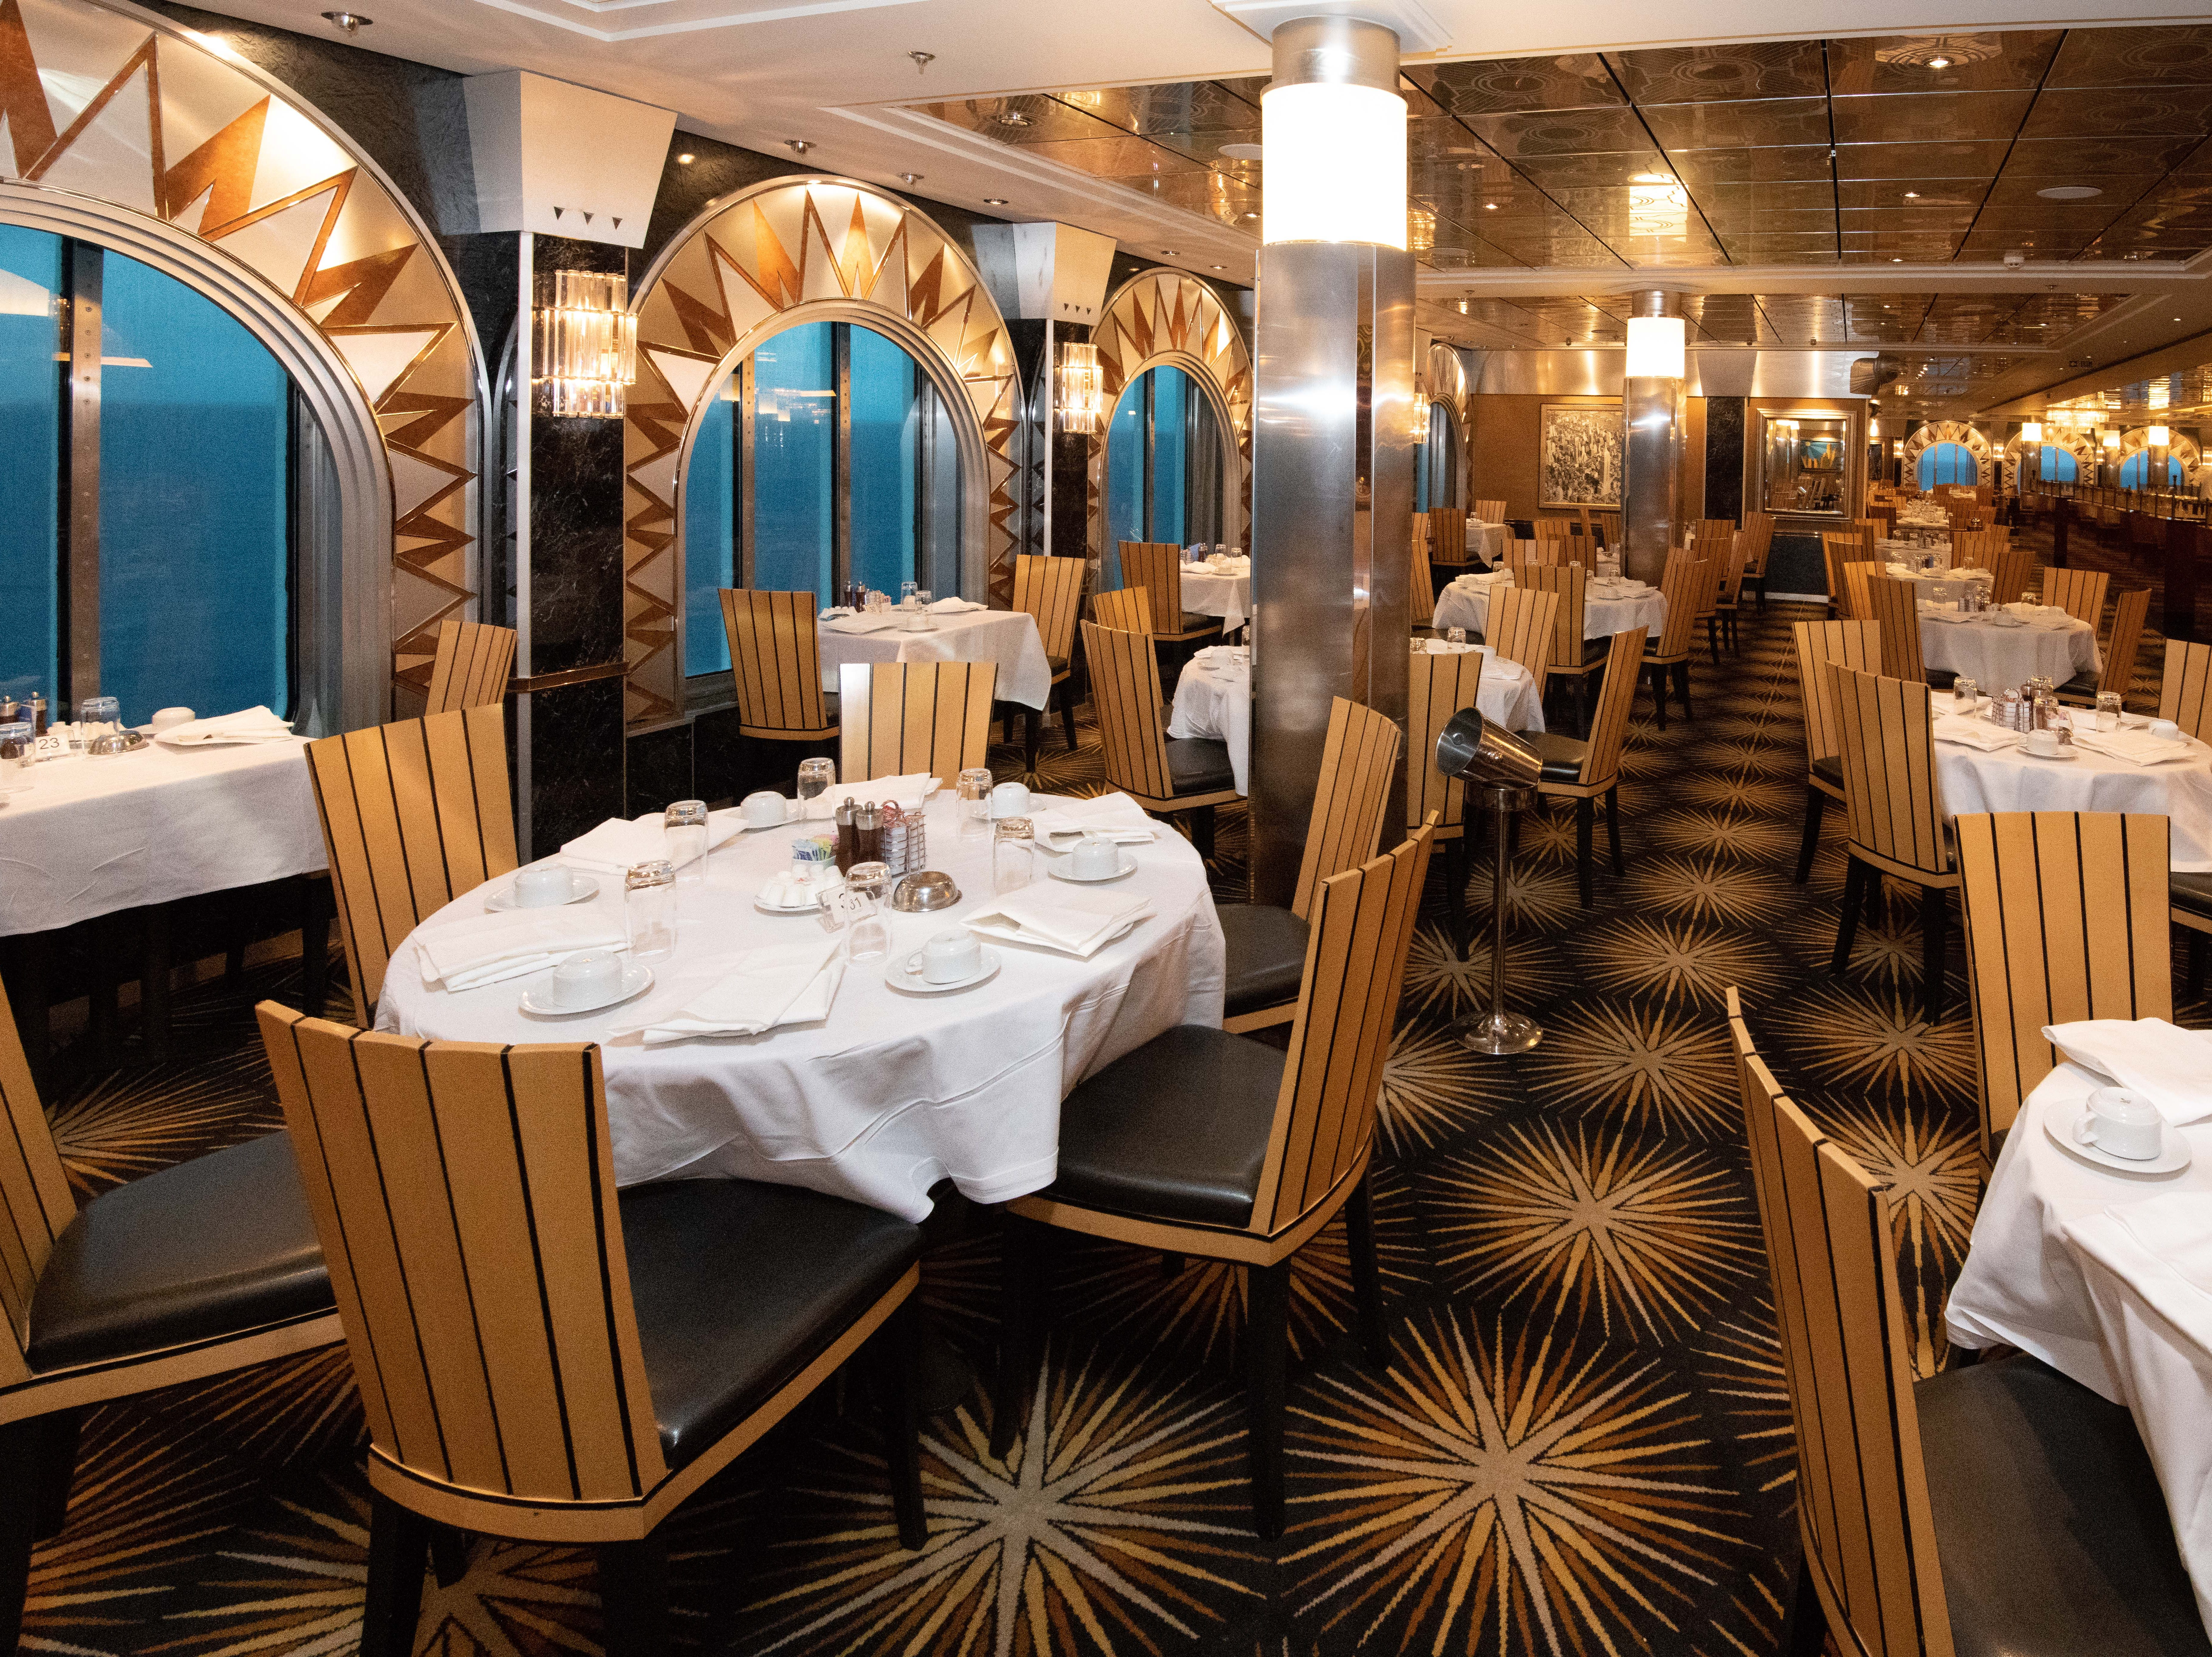 Featuring an Art Deco decor inspired by the architecture and skyscrapers of 1930s Manhattan, the Skyline Main Dining Room is one of two main dining rooms on Pride of America that are included in the fare.